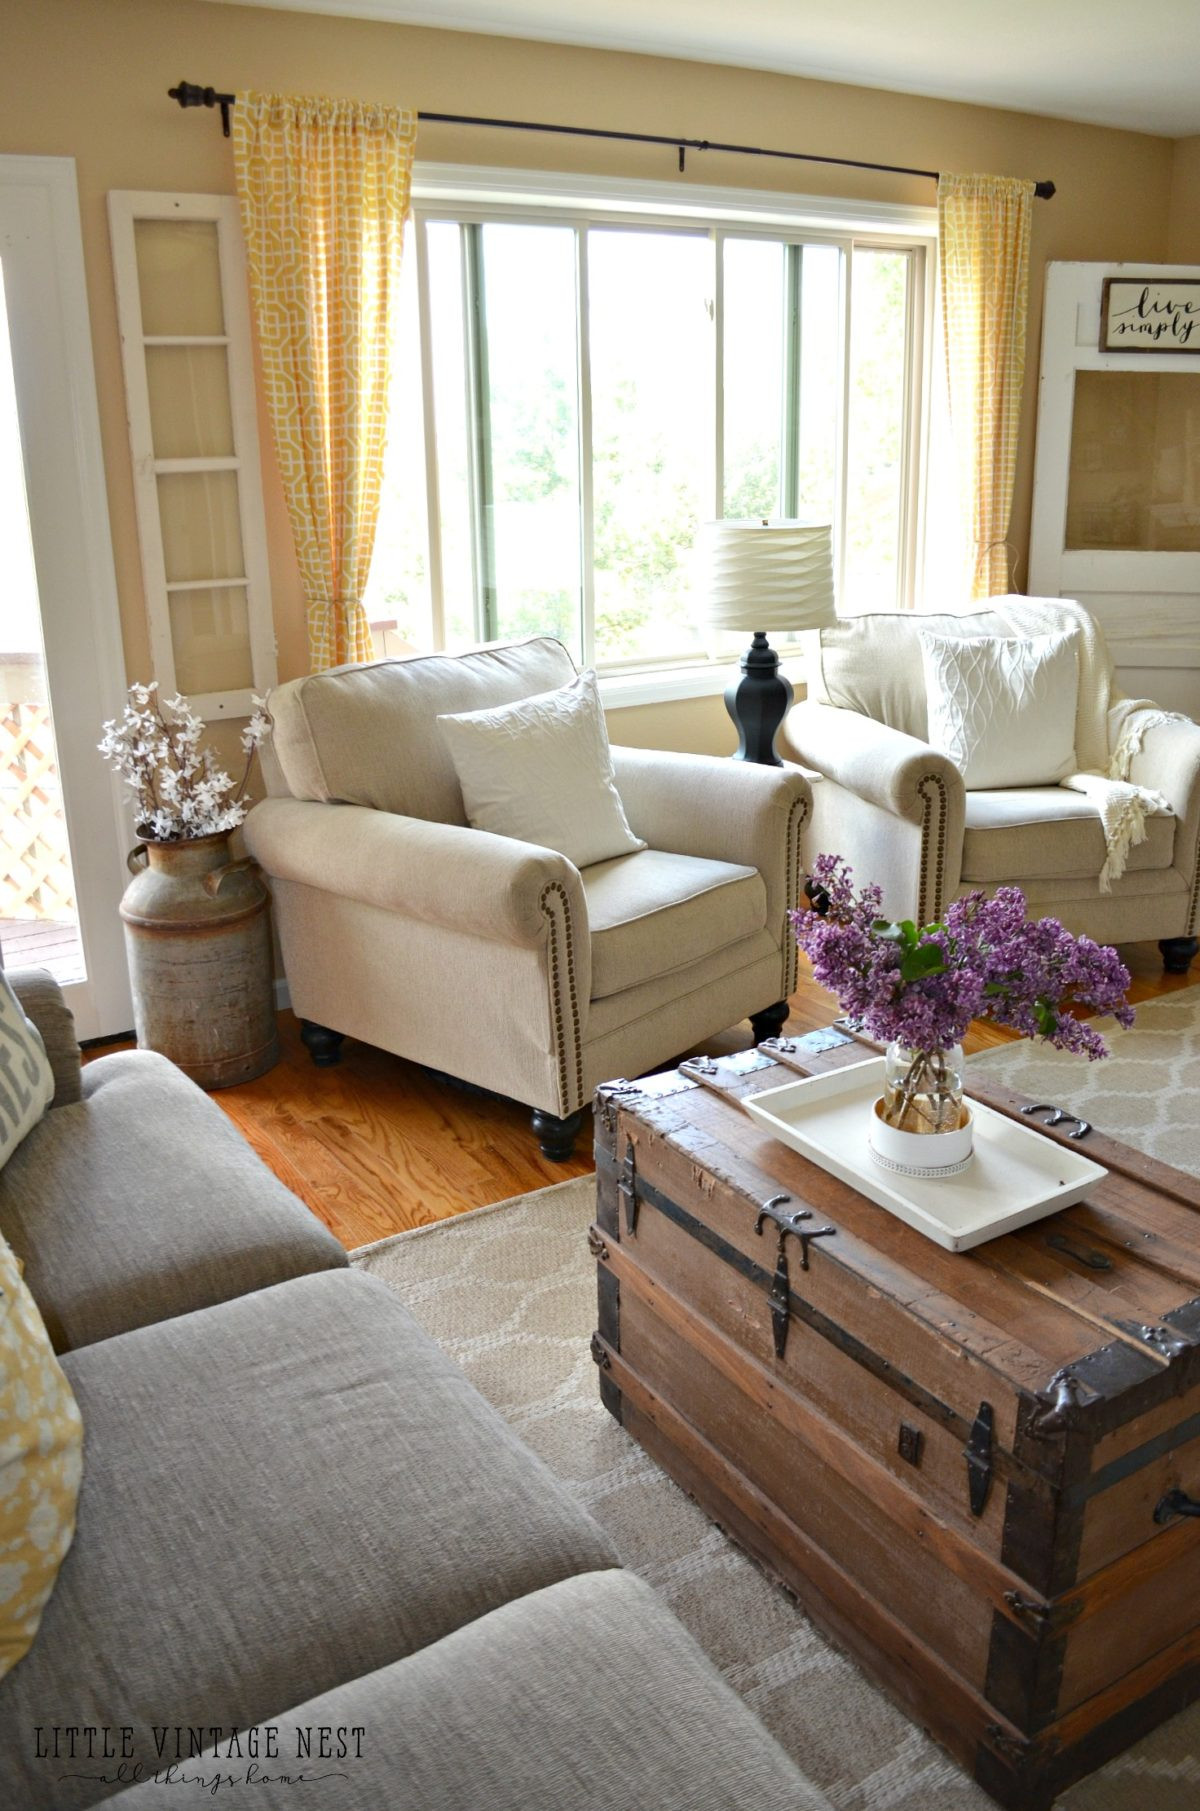 Best ideas about Farmhouse Living Room Ideas . Save or Pin How I Transitioned to Farmhouse Style Little Vintage Nest Now.